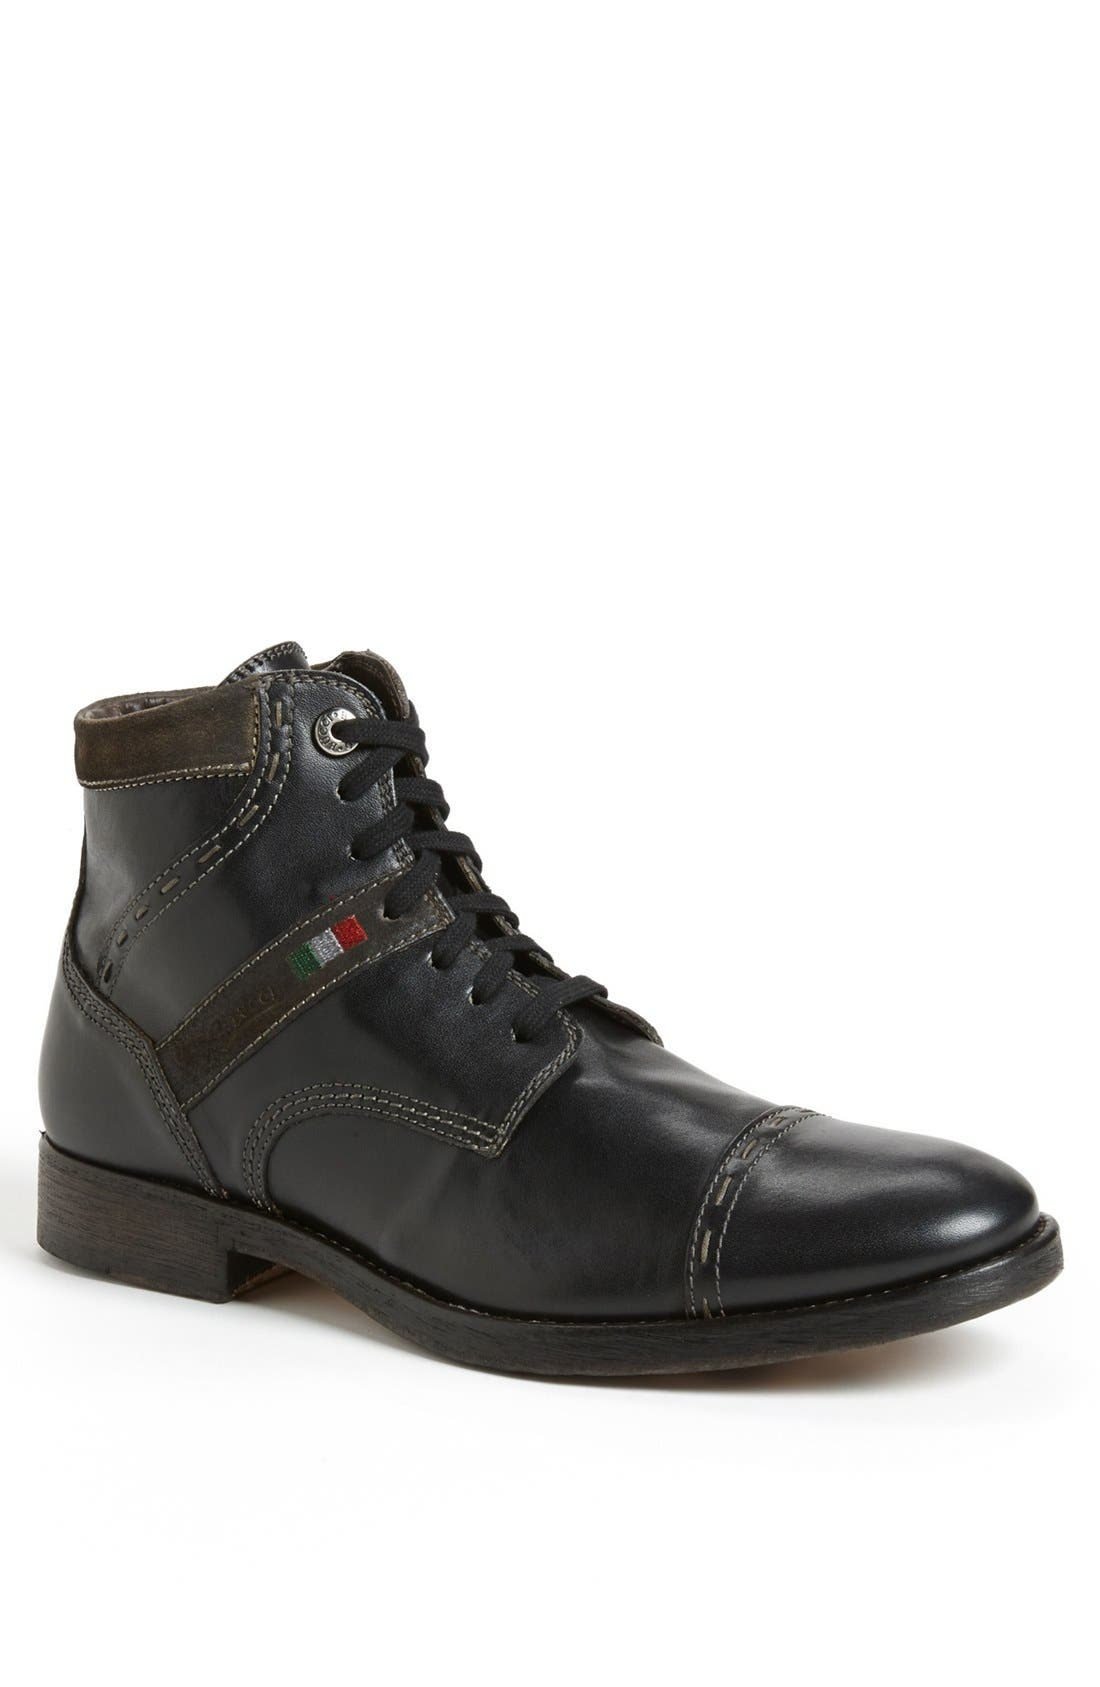 Main Image - Bacco Bucci 'Barone' Cap Toe Boot (Men)